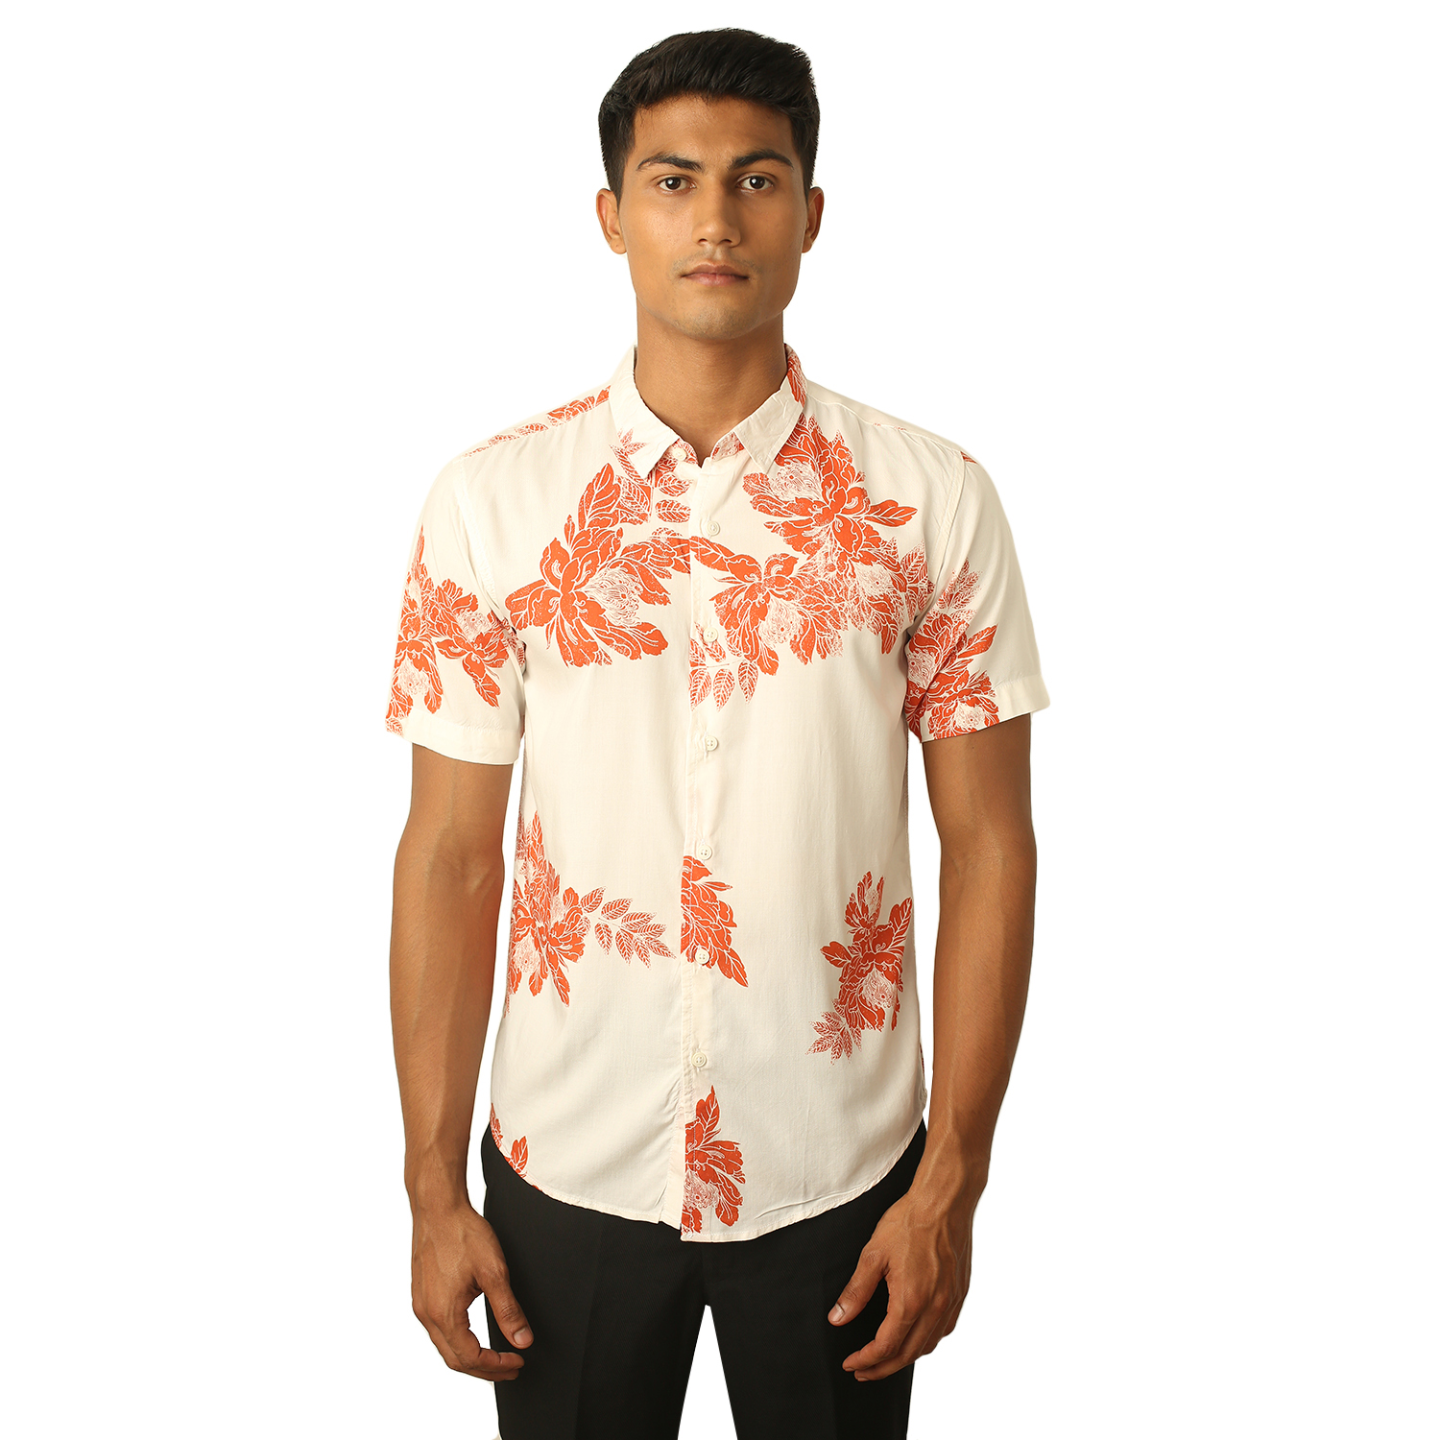 Destello Blossoms Print Shirt